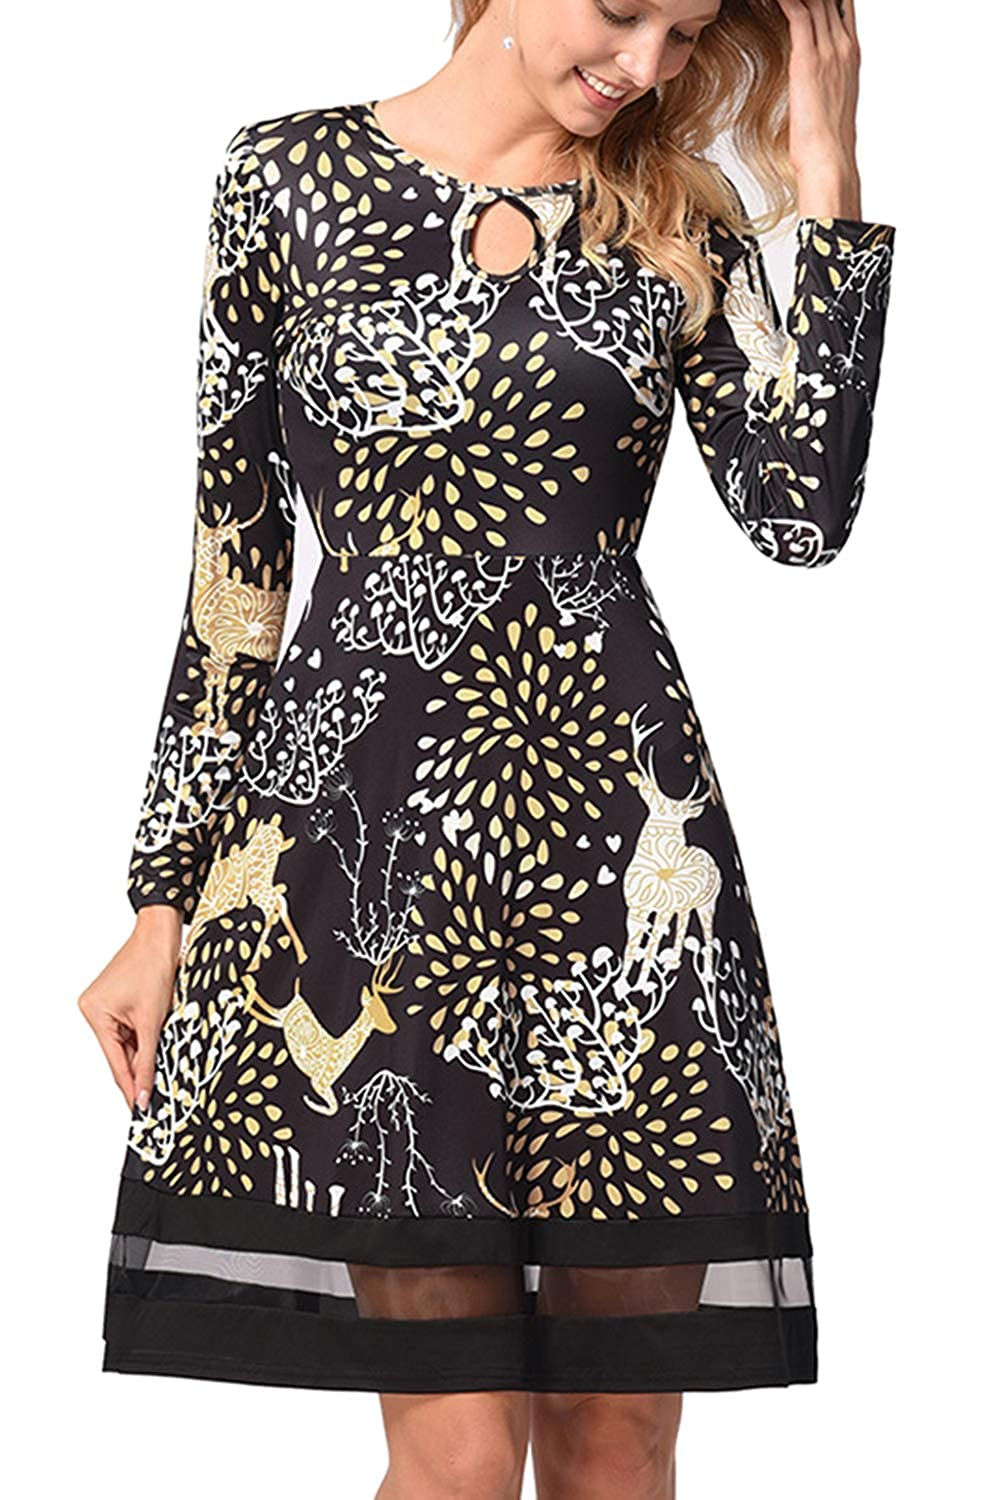 Vosujotis Womens Christmas Dress Long Sleeve Xmas Print Flared Midi Dress